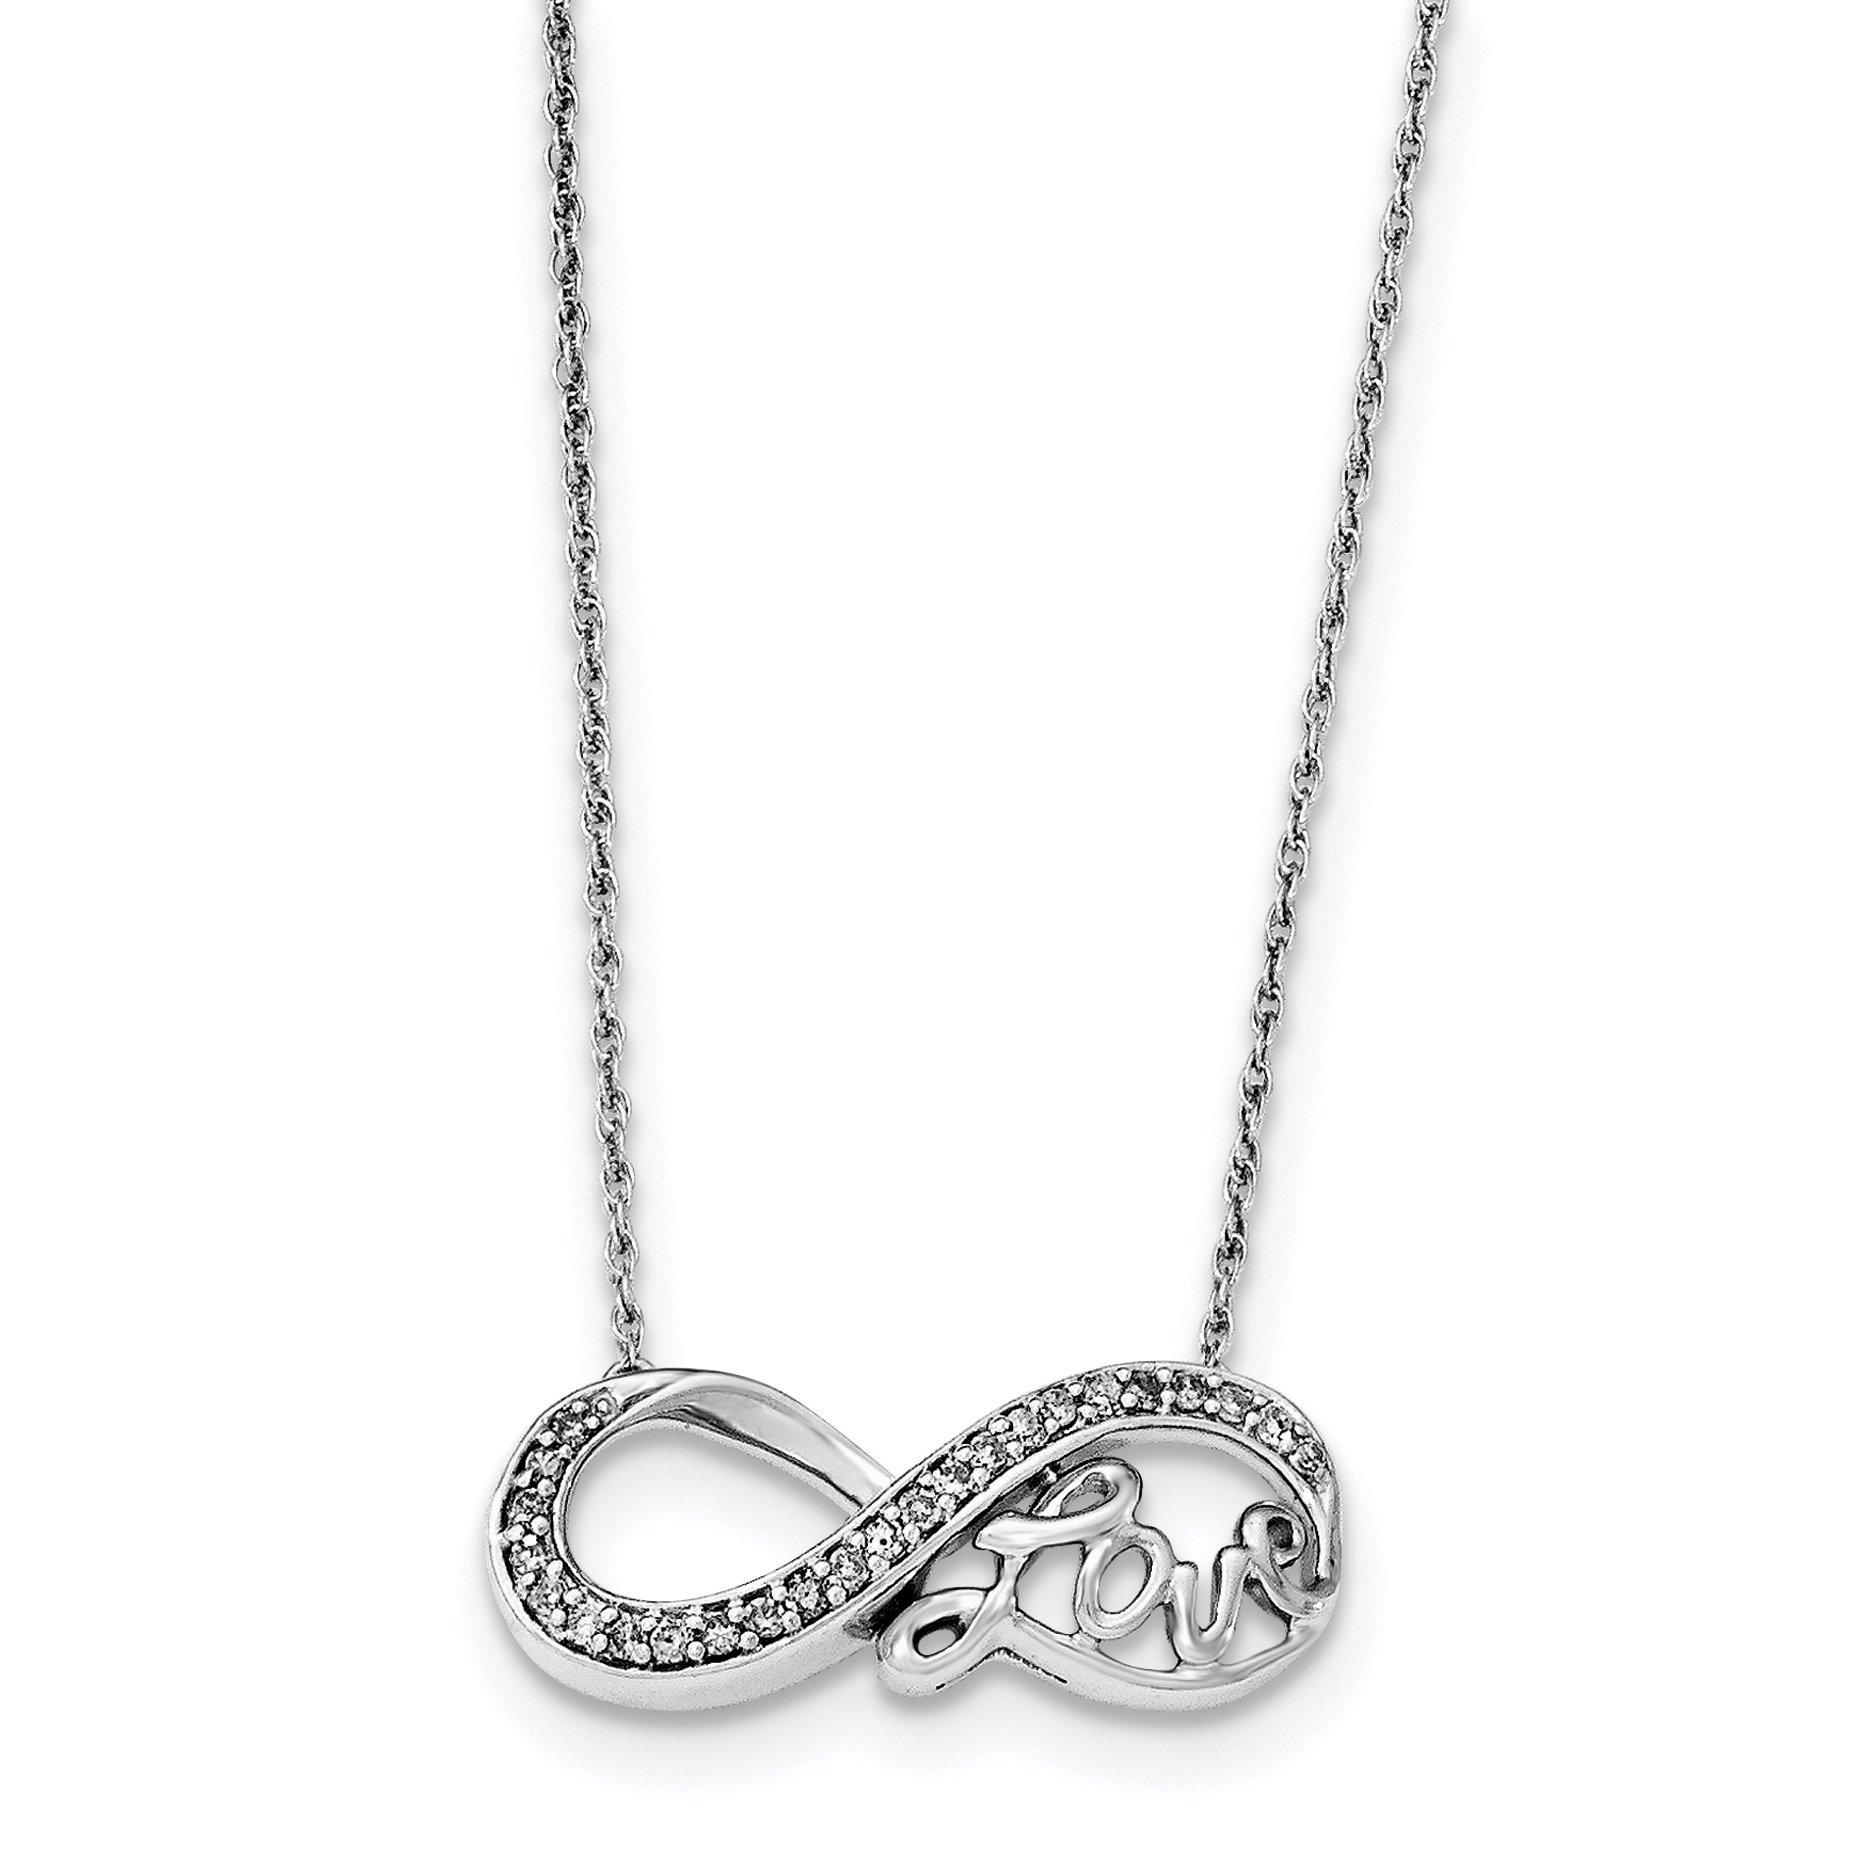 ICE CARATS 925 Sterling Silver Diamond Infinity Symbol Love Chain Necklace S/love Fine Jewelry Gift For Women Heart